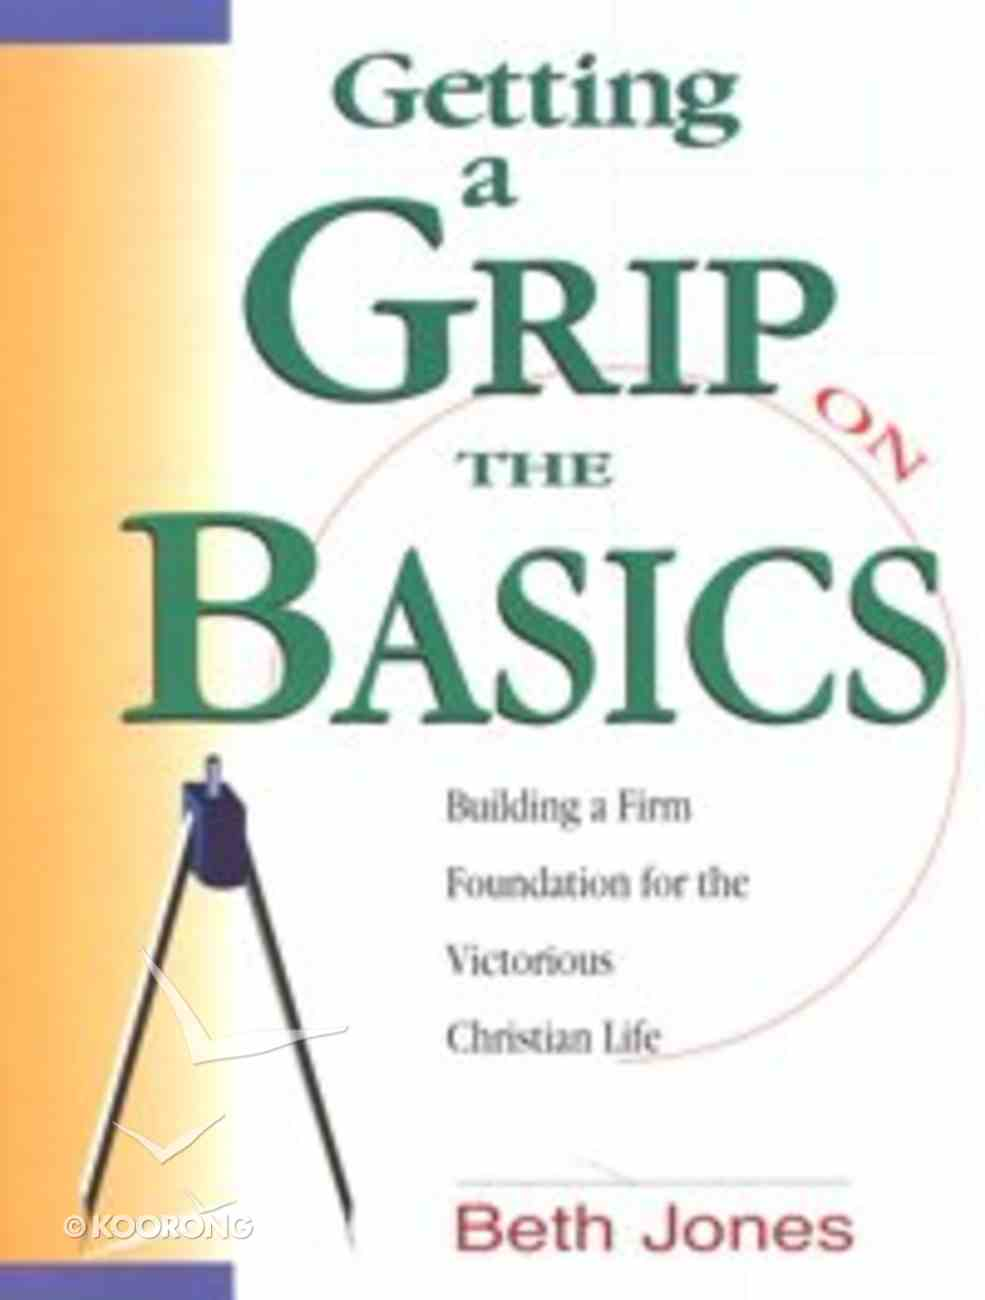 Getting a Grip on the Basics (Workbook) Paperback